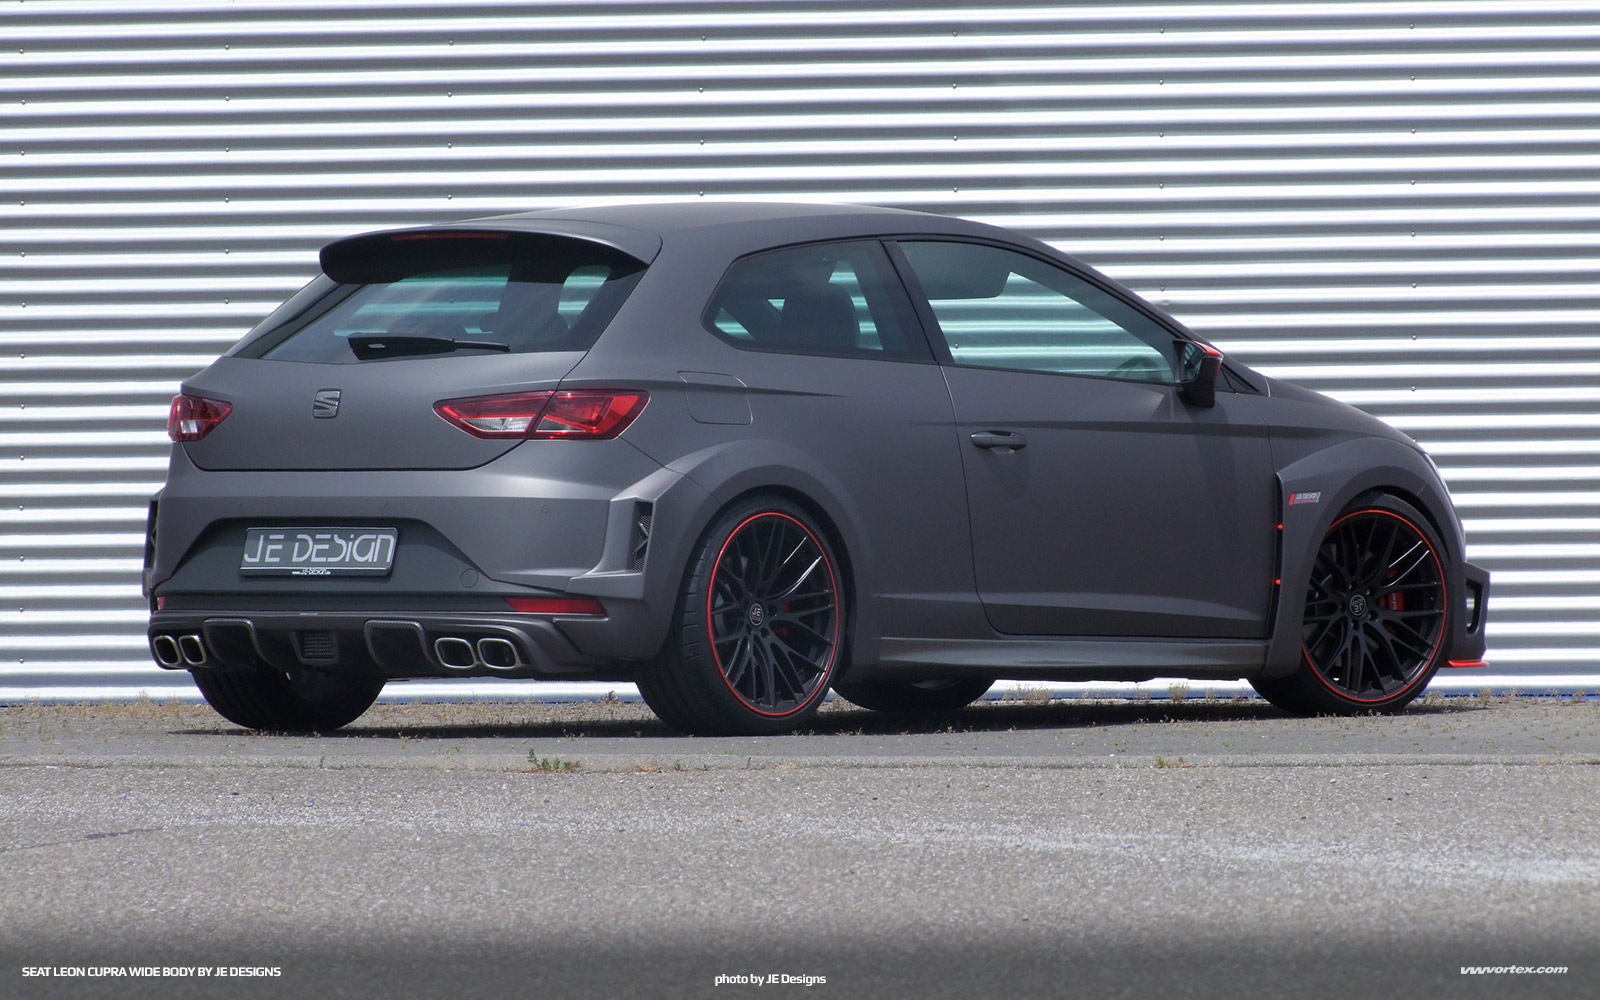 JE DESIGN SEAT Cupra280 WIDEBODY01 600x375